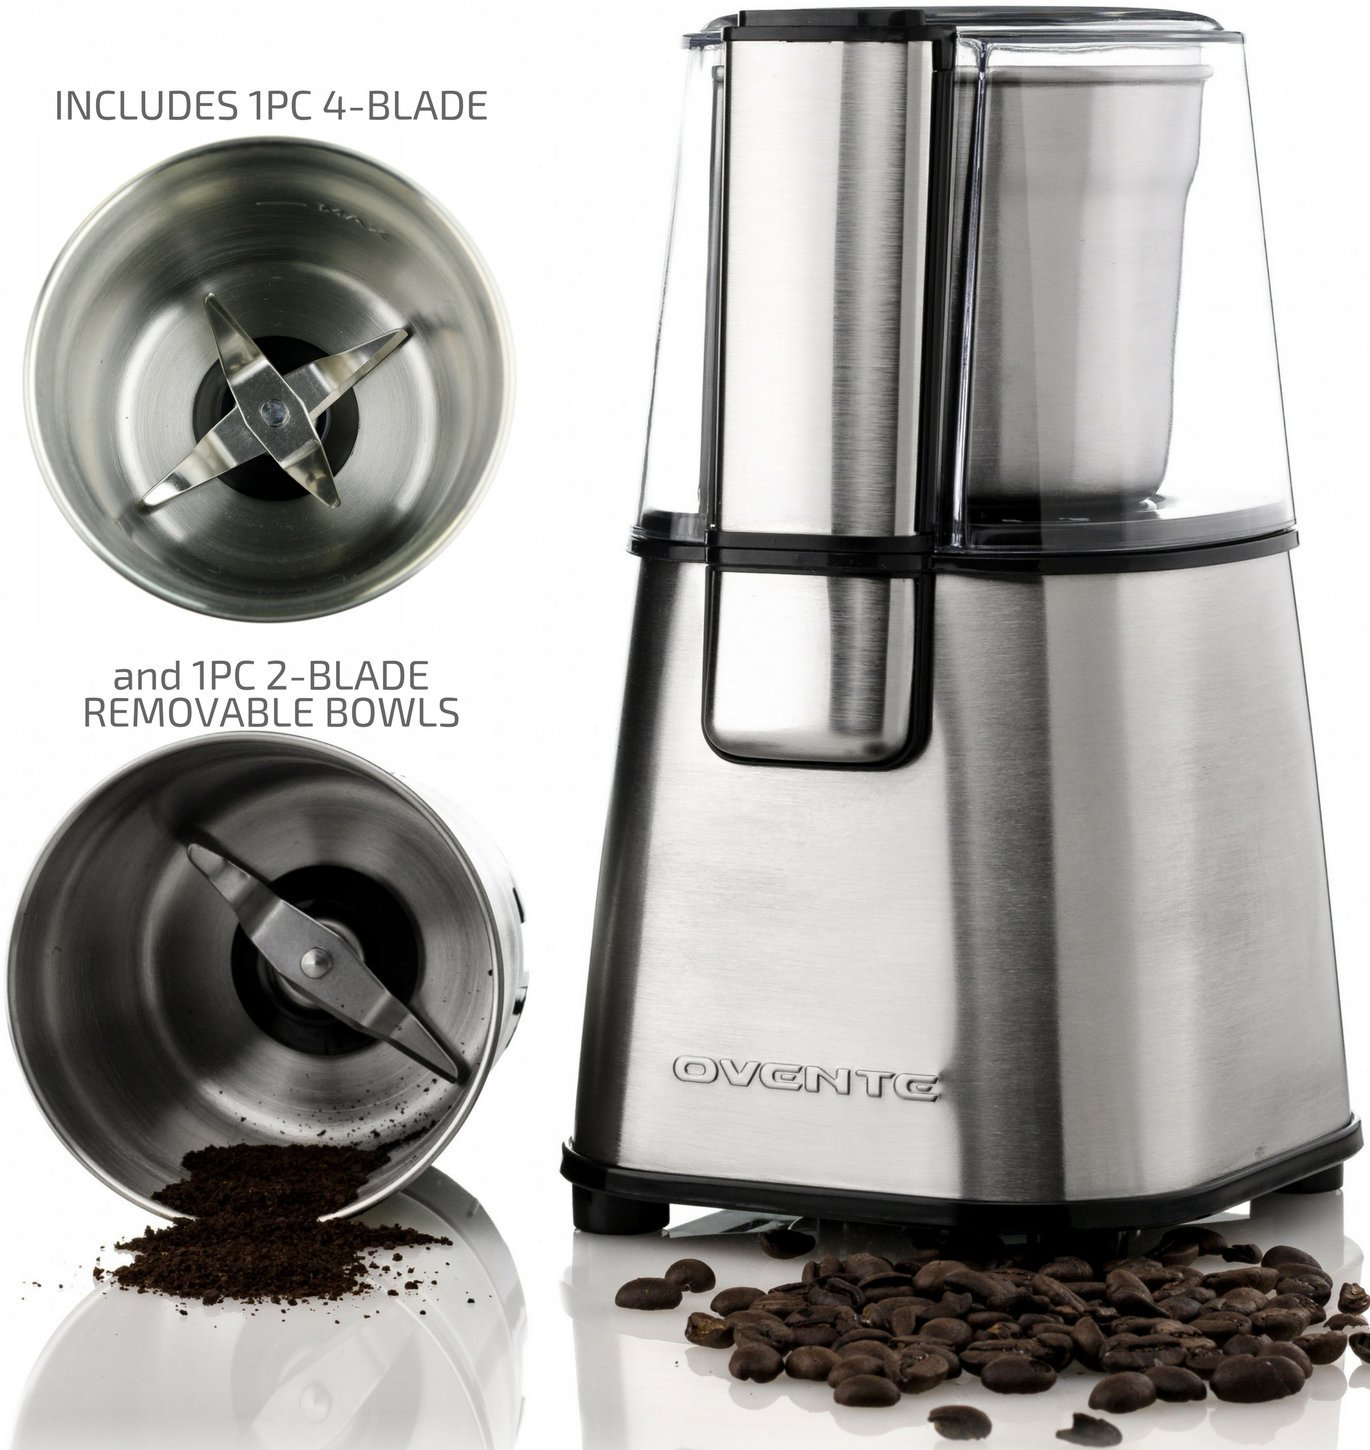 OVENTE Multi-Purpose Electric Coffee Grinder & Spice Grinder with 2 Stainless Steel Blades Removable Bowl (CG620S + ACPCG6000), Set, Silver by OVENTE